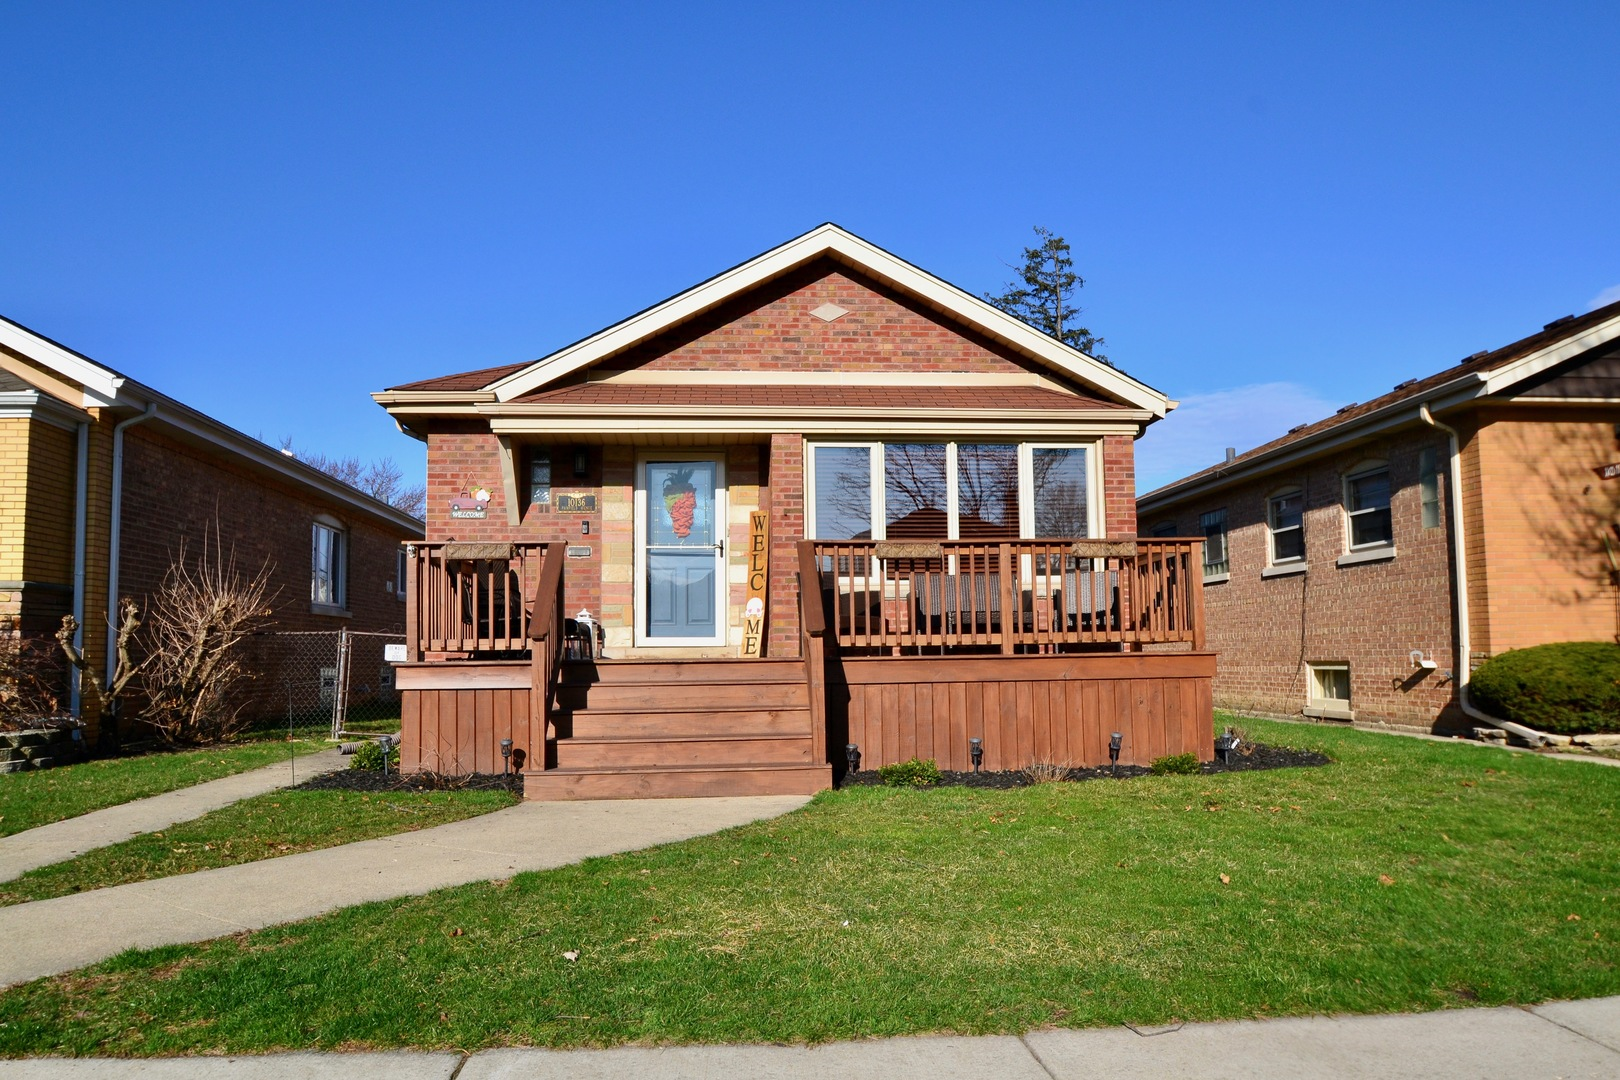 Photo of 10136 Fairfield Chicago IL 60655